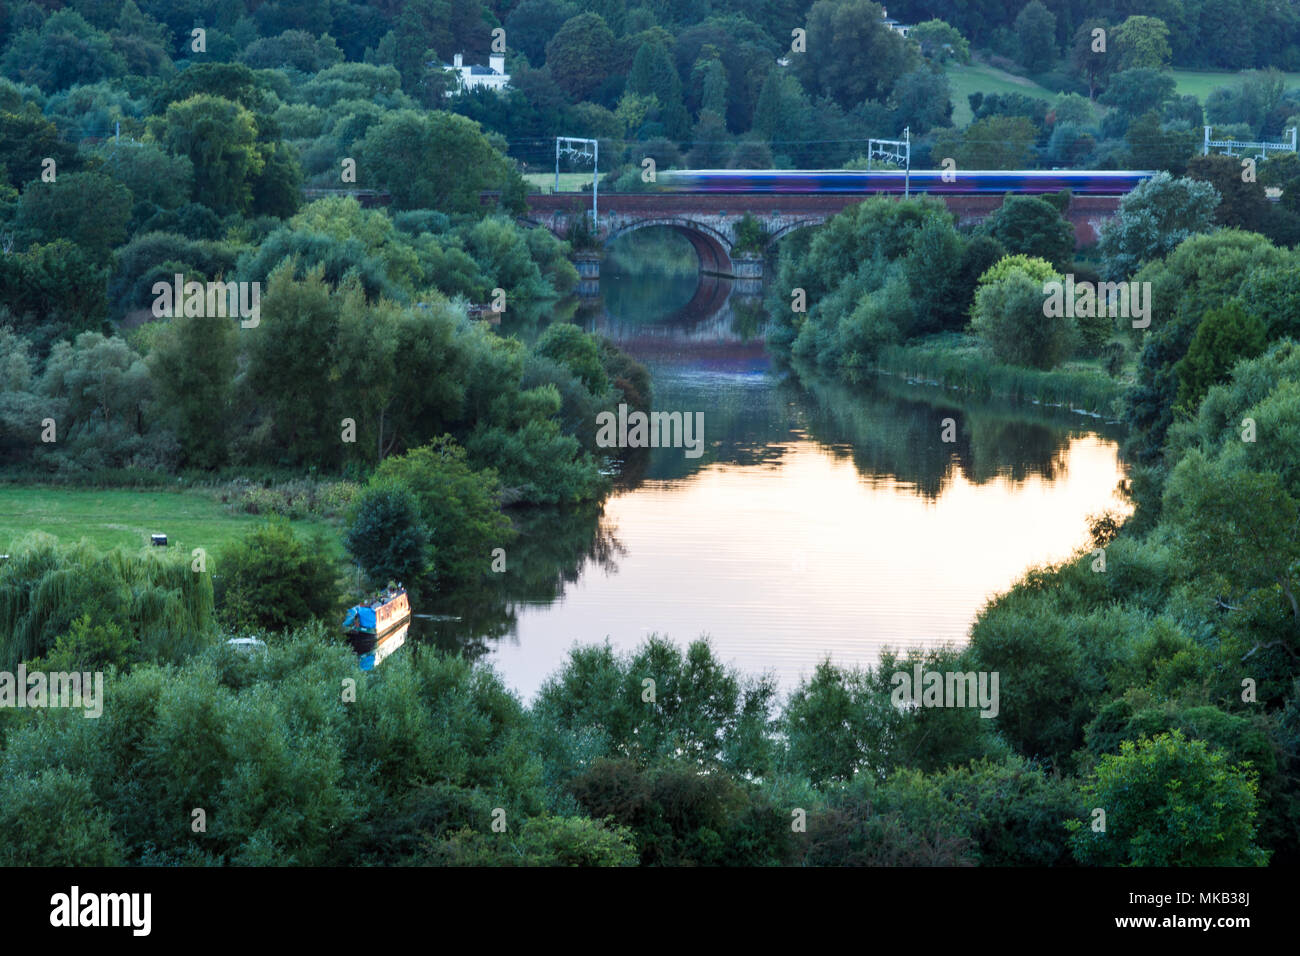 Reading, England, UK - August 29, 2016: Thames Turbo diesel multiple units crossing the River Thames at Goring Gap in Berkshire, under new electrifica - Stock Image